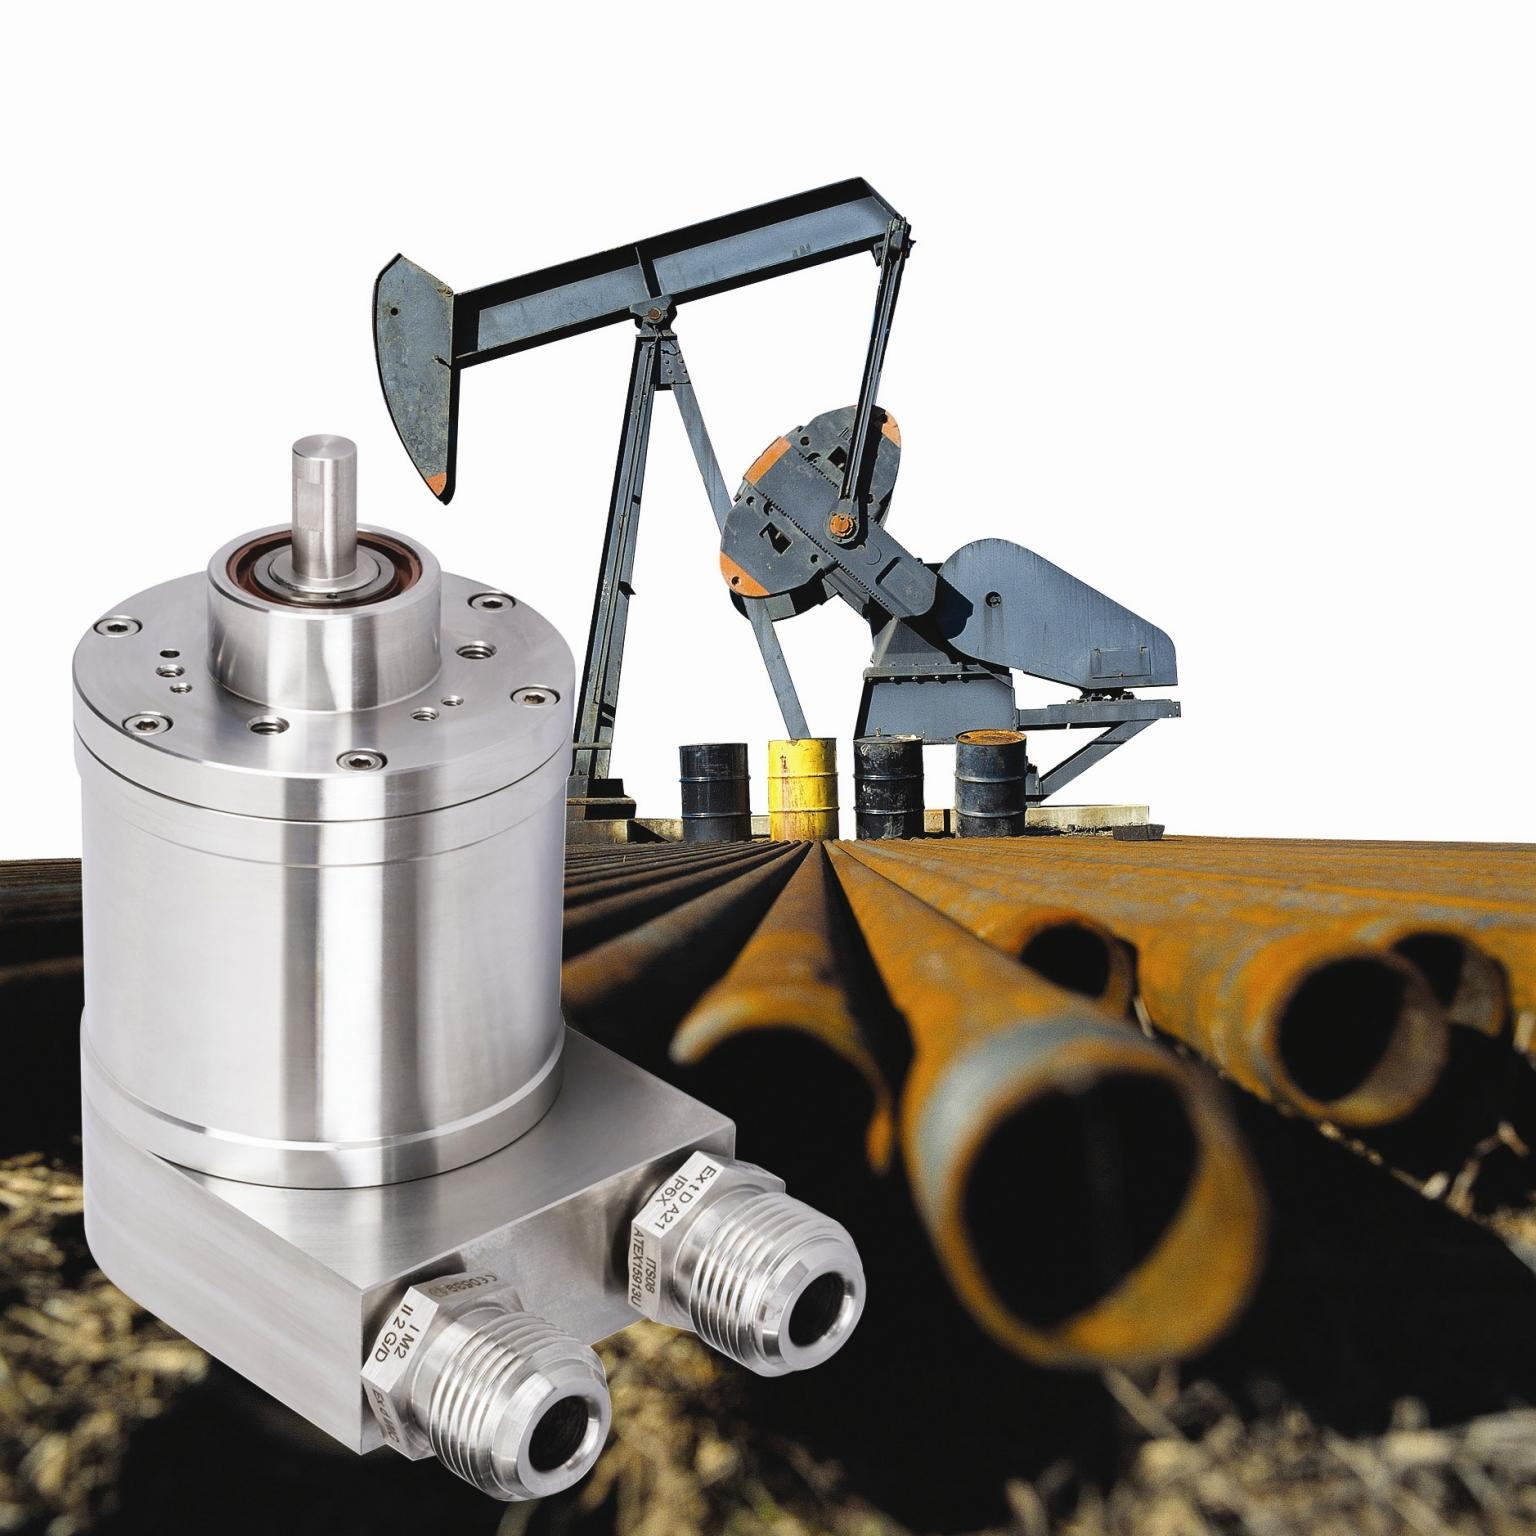 Posital now provides absolute encoders for use in hazardous areas